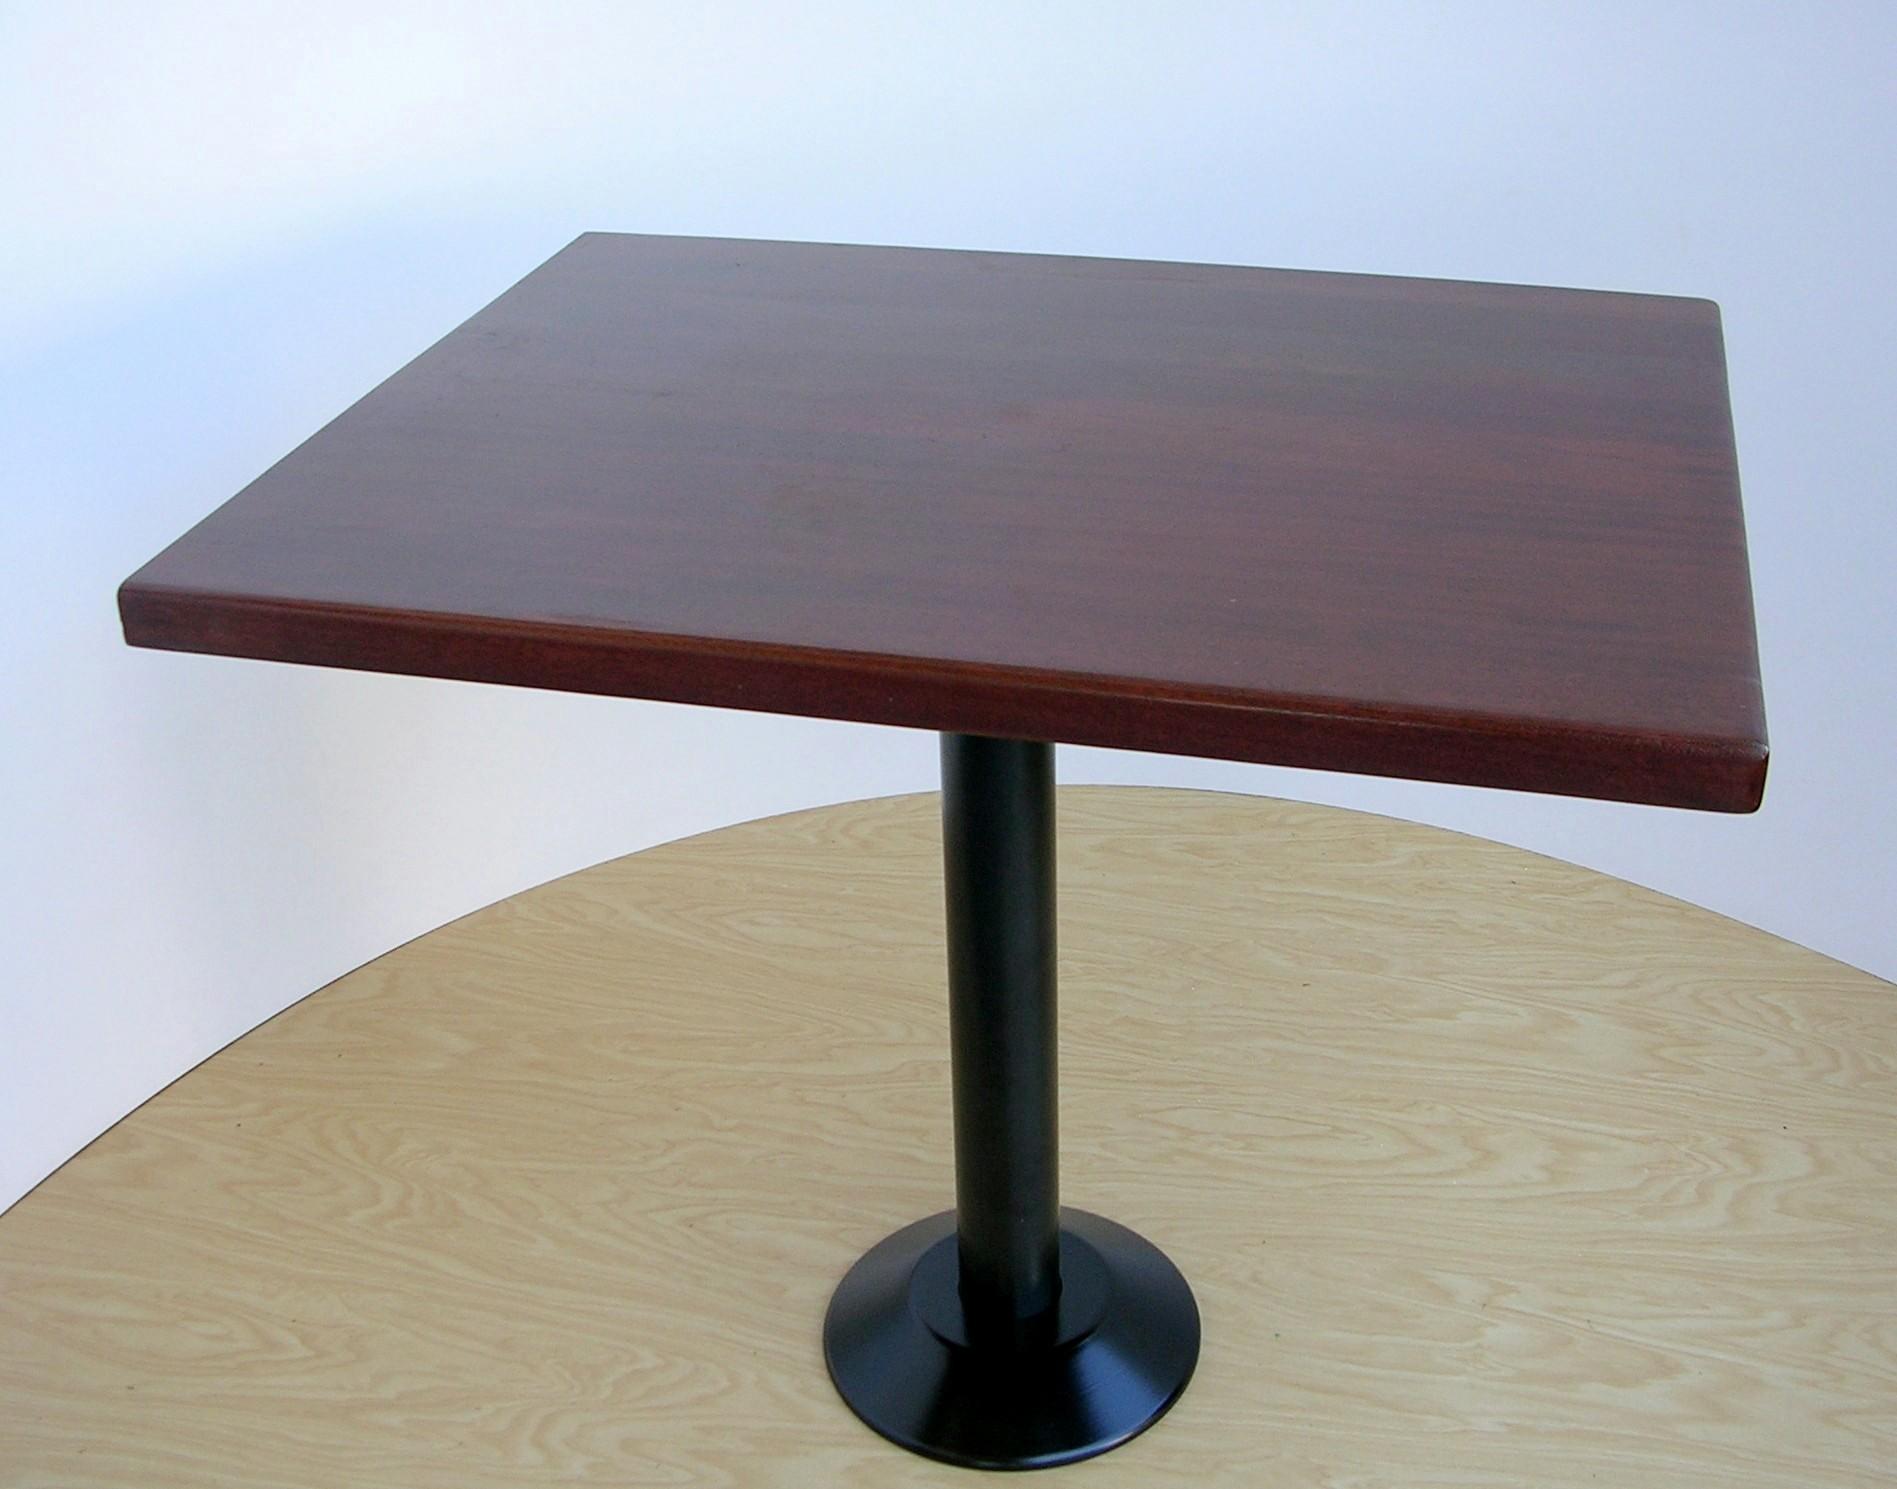 Table 5 dbc millwork for Table rrq 2015 52